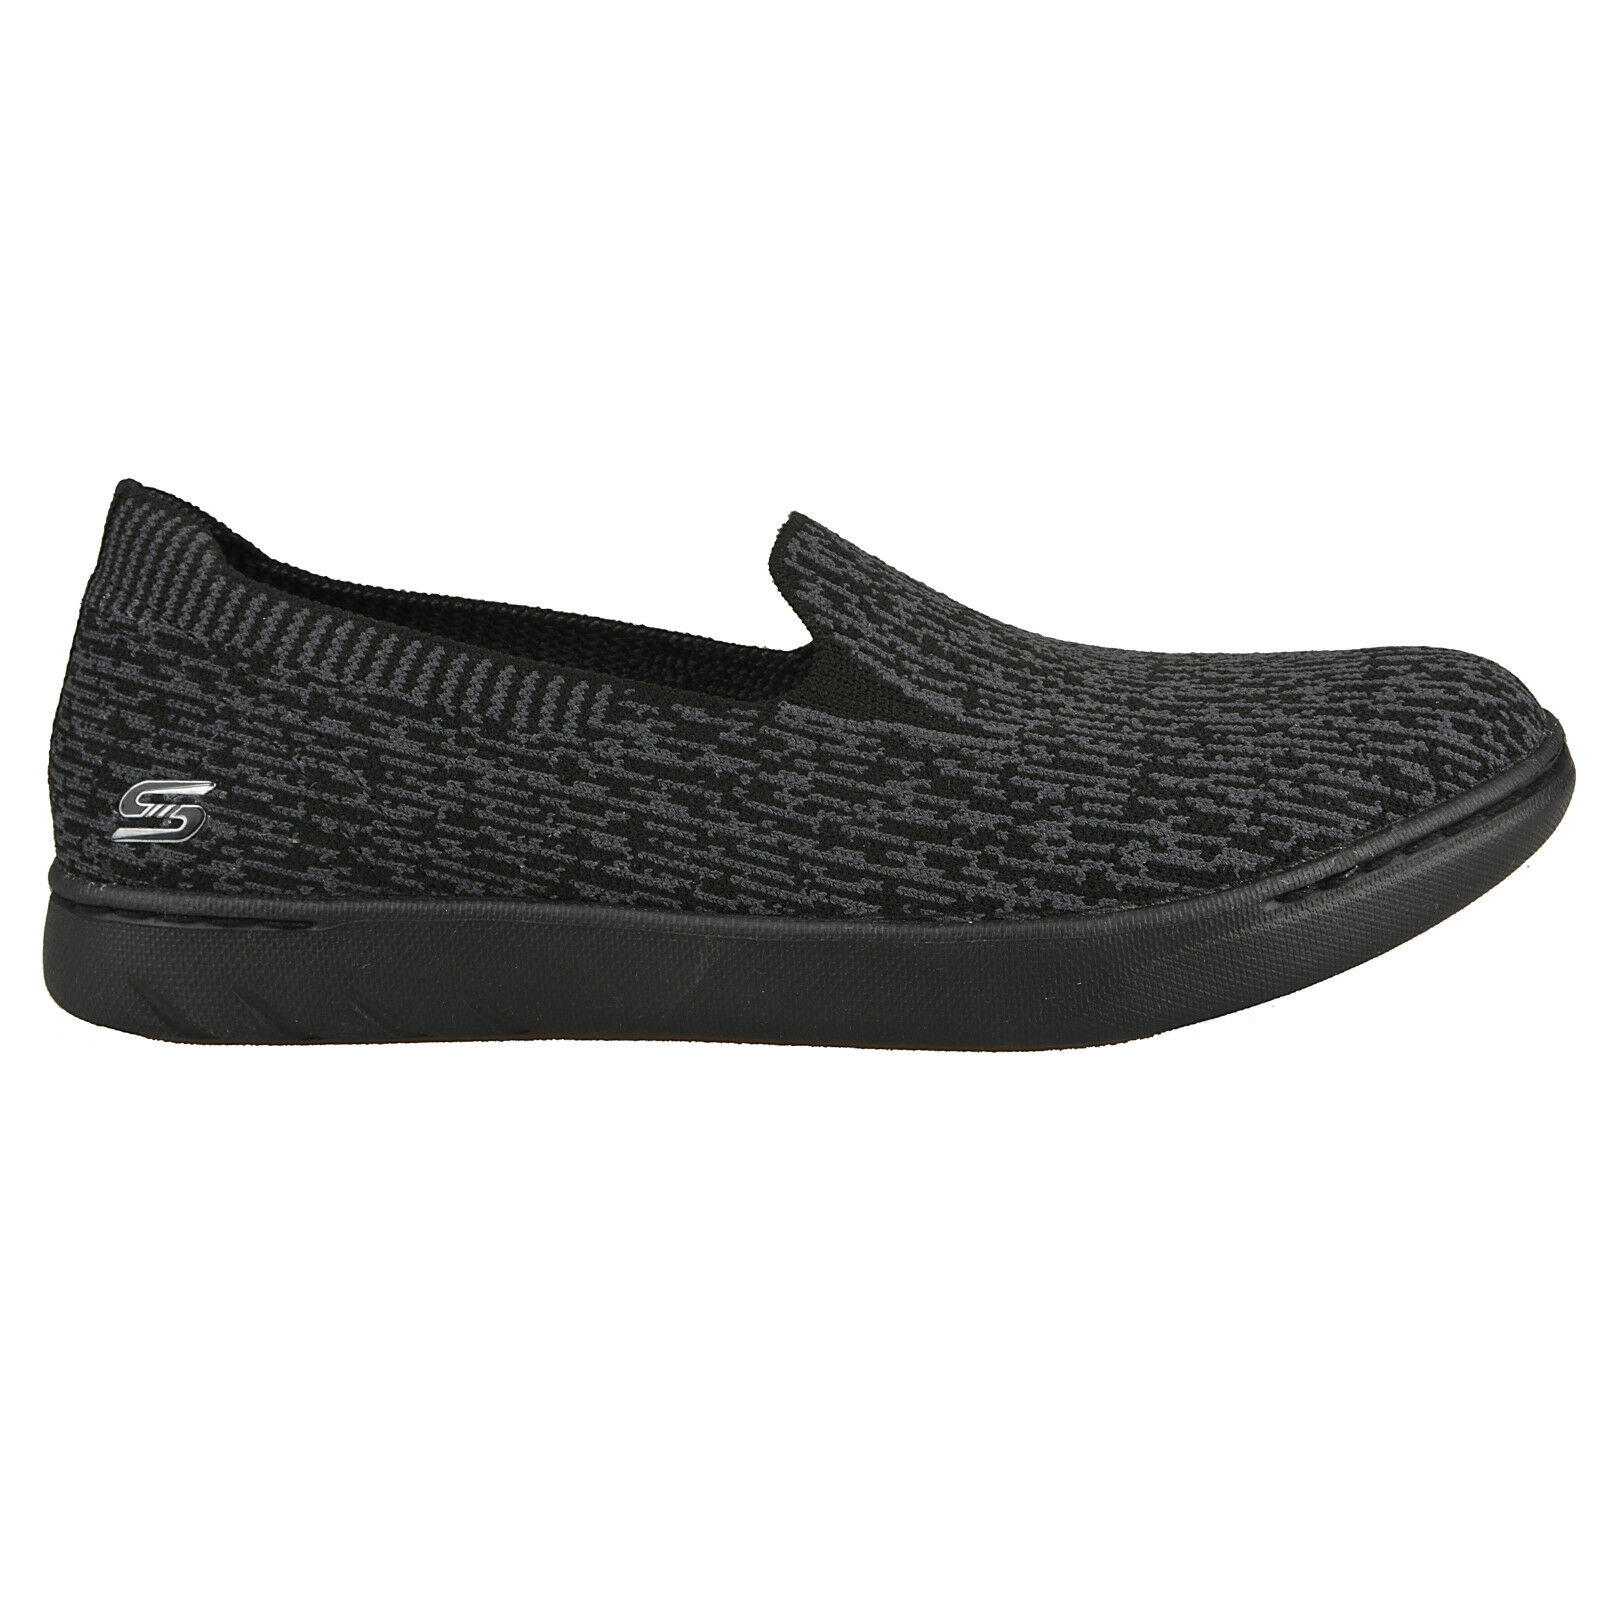 NEU SKECHERS Damen Sneakers MILLENNIAL Turnschuhe Slipper Slip On MILLENNIAL Sneakers Schwarz 453a11